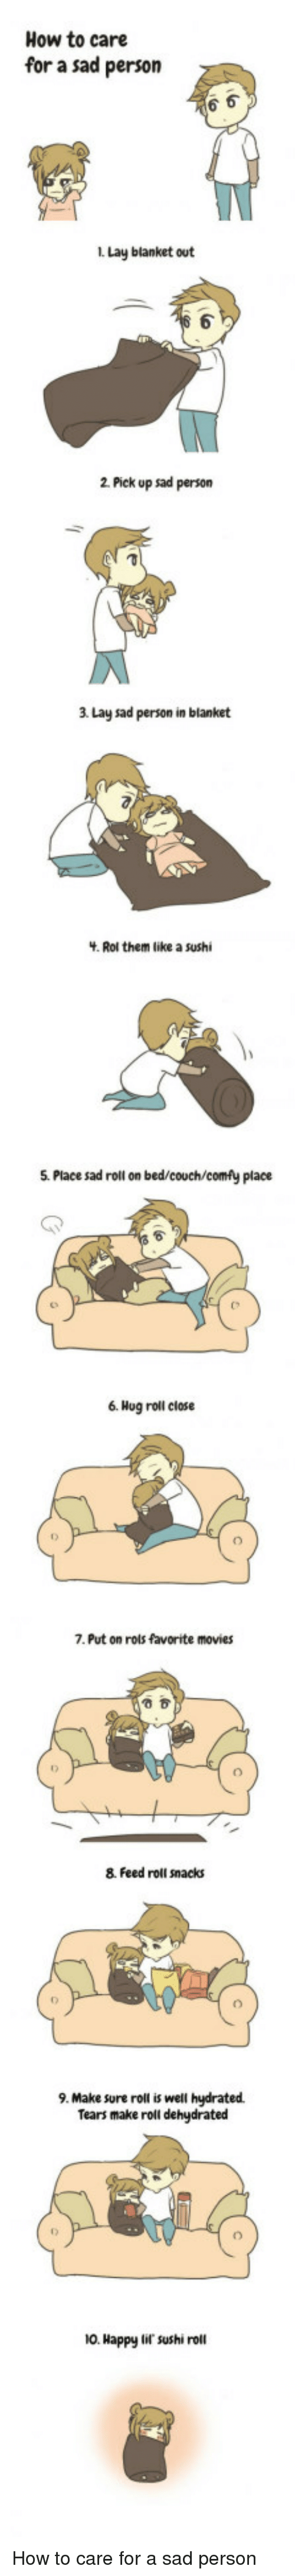 Movies, Couch, and Happy: How to care  for a sad person  i. Lay blanket out  1  2 Pick up sad person  3 Lay sad person in blanket  . Rol them like a sushi  5. Place sad roll on bed/couch/comfy place  6. Hog roll close  7. Put on rols favorite movies  8. Feed roll snacks  9. Make sure roll is well hydrated  Tears make roll dehydrated  10. Happy lif sushi roll <p>How to care for a sad person</p>